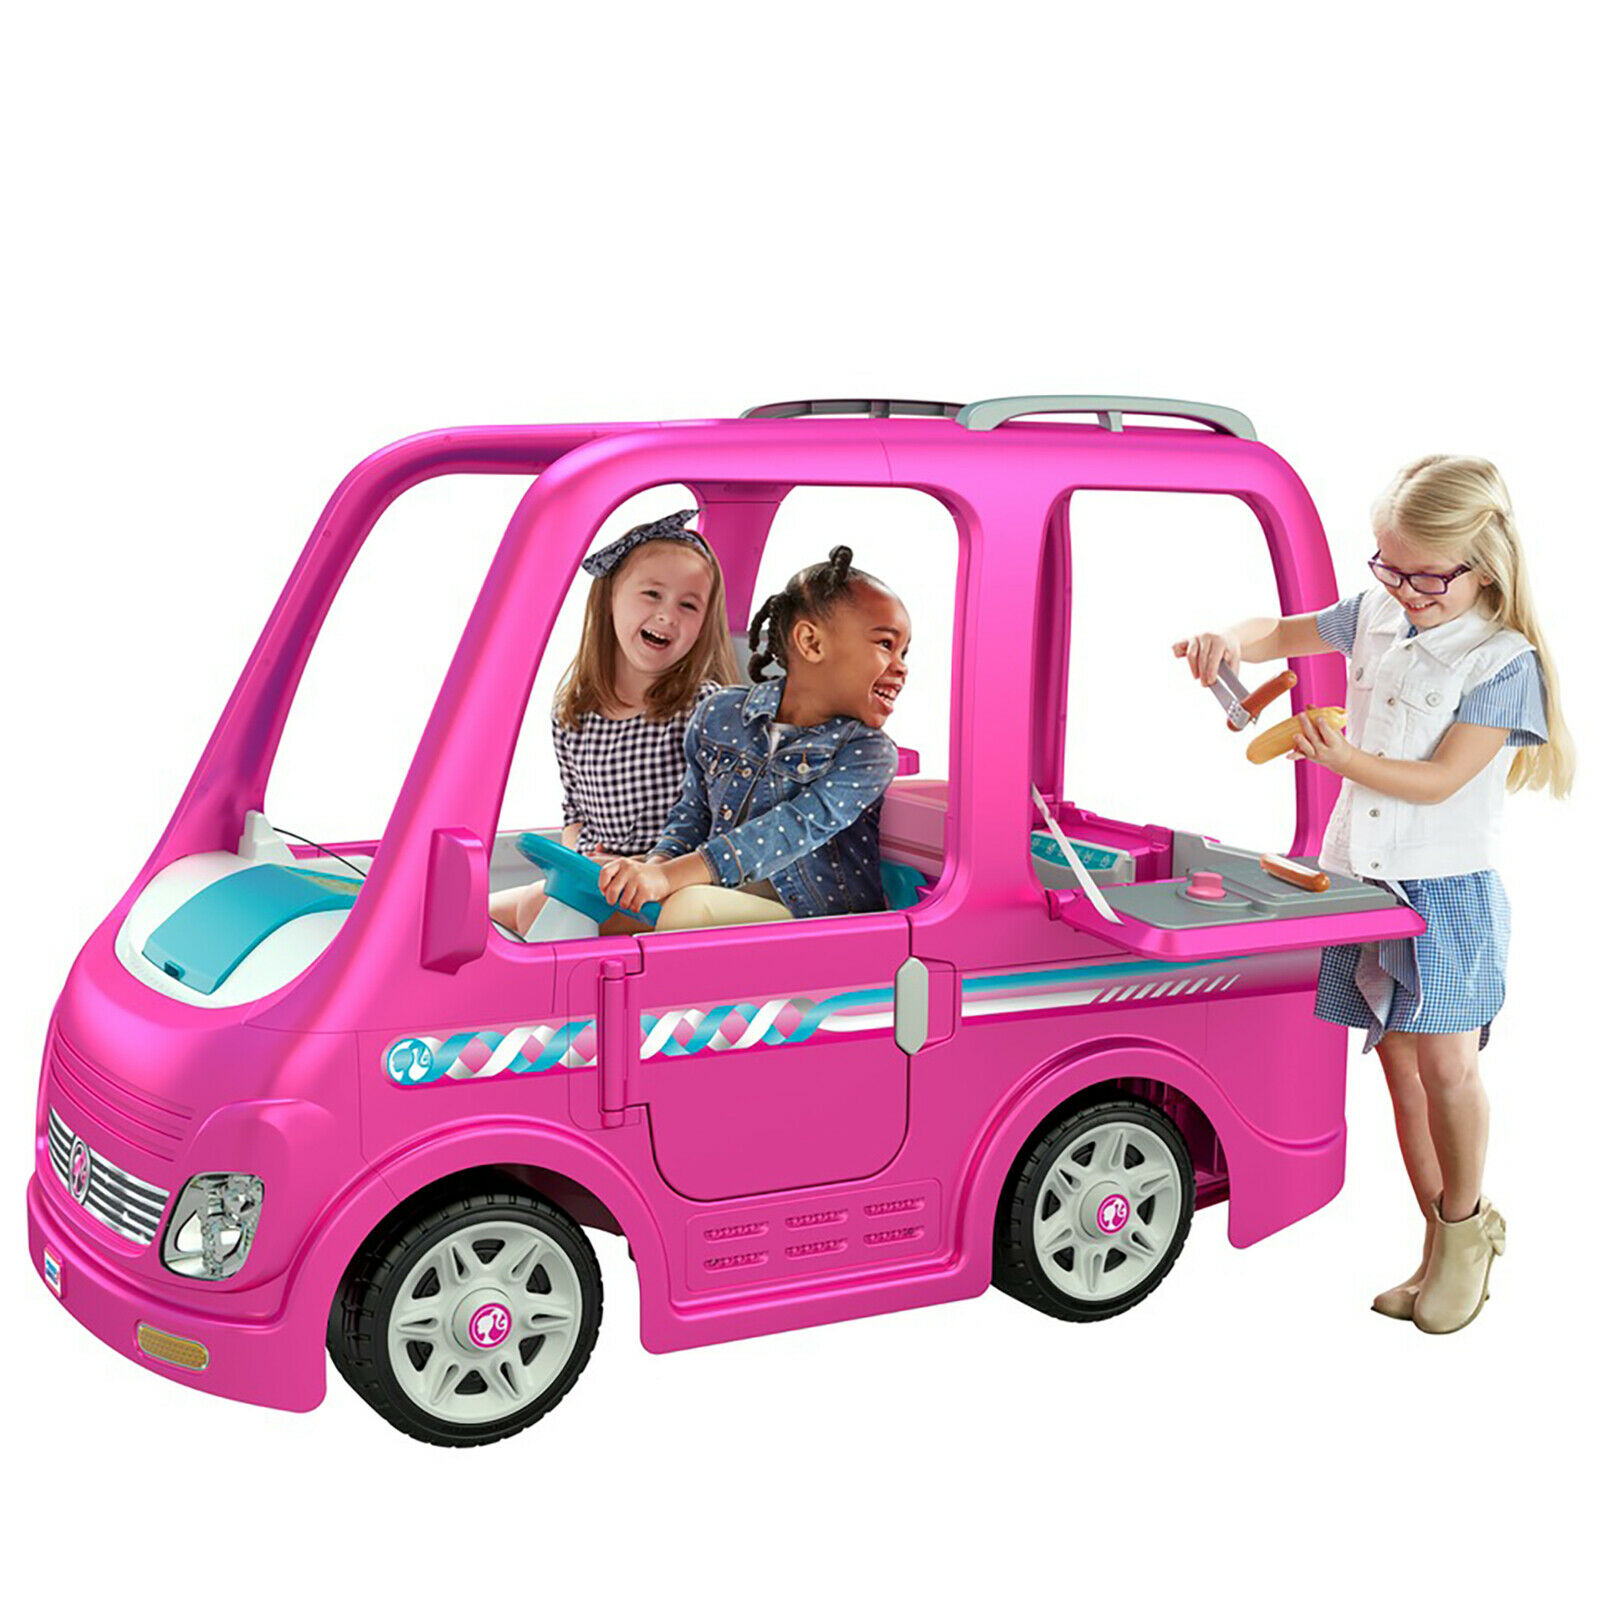 power wheels barbie cadillac hybrid escalade ext ride on pink for sale online ebay barbie dream camper rv power wheels battery power ride on girls car pink toy 12v